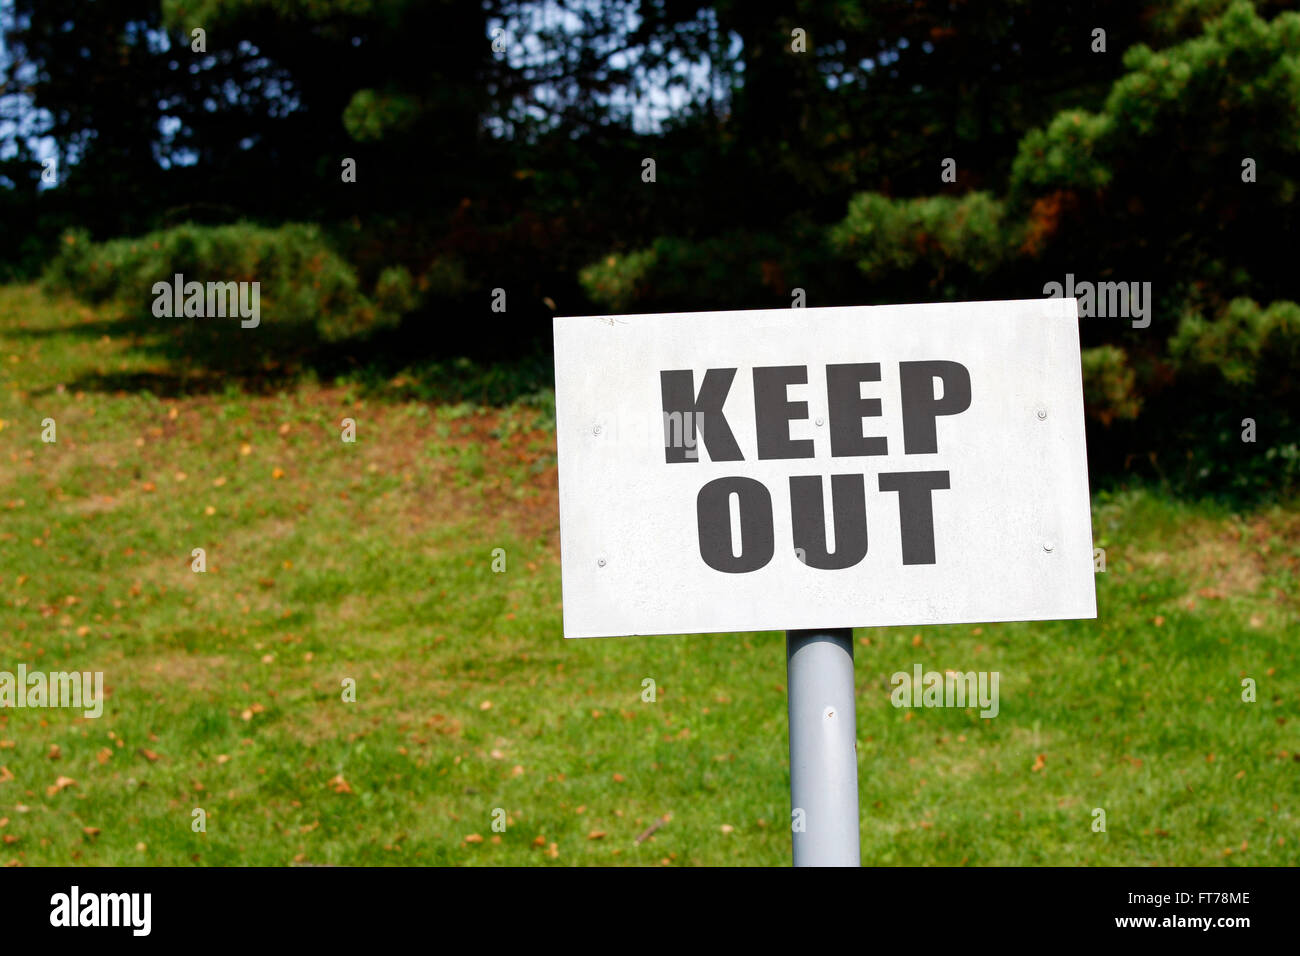 Keep out sign in a rural field - Stock Image